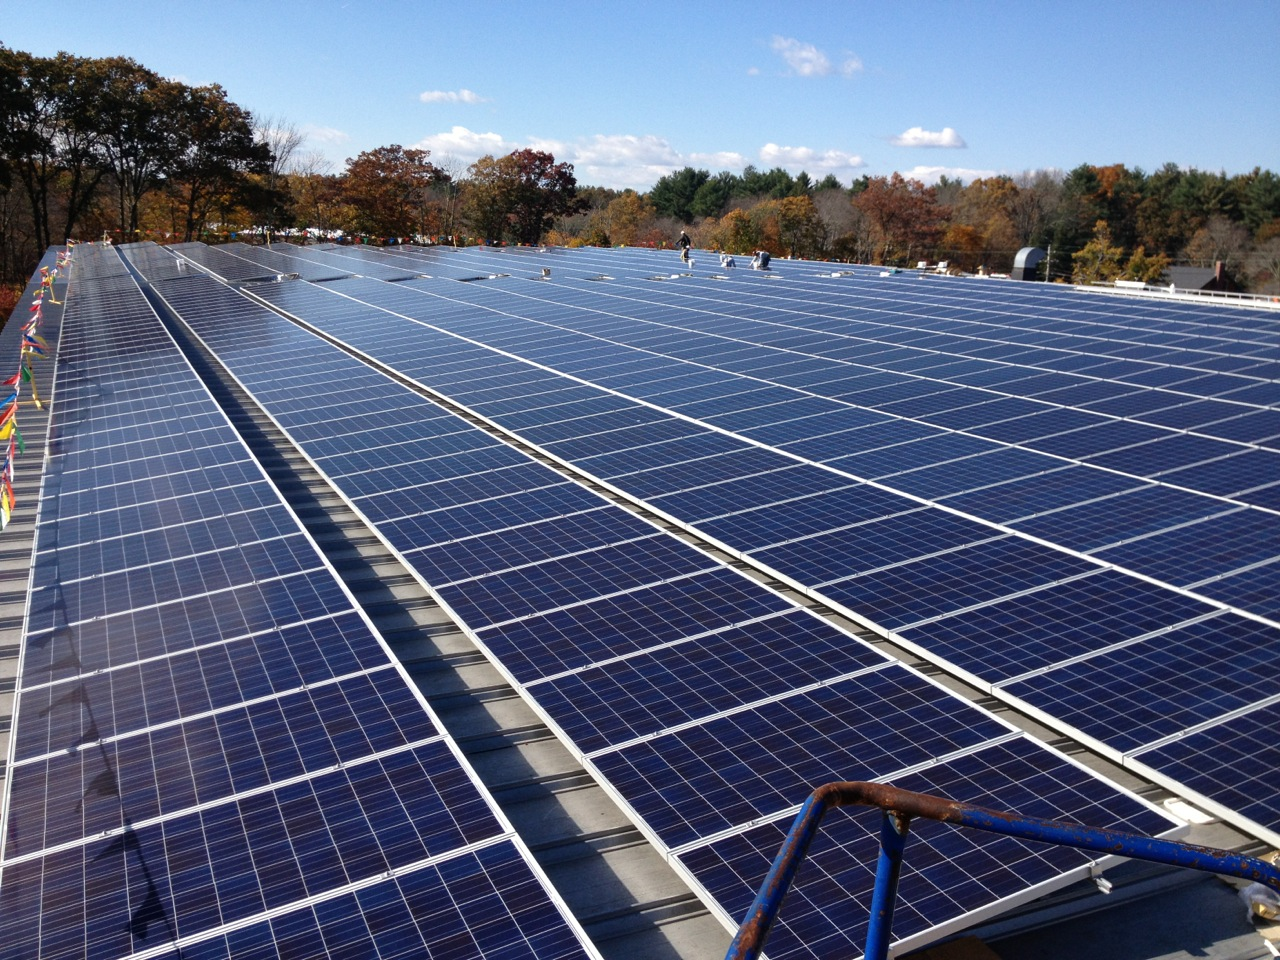 A total of 1320 solar panels make up this 389.40kW solar system